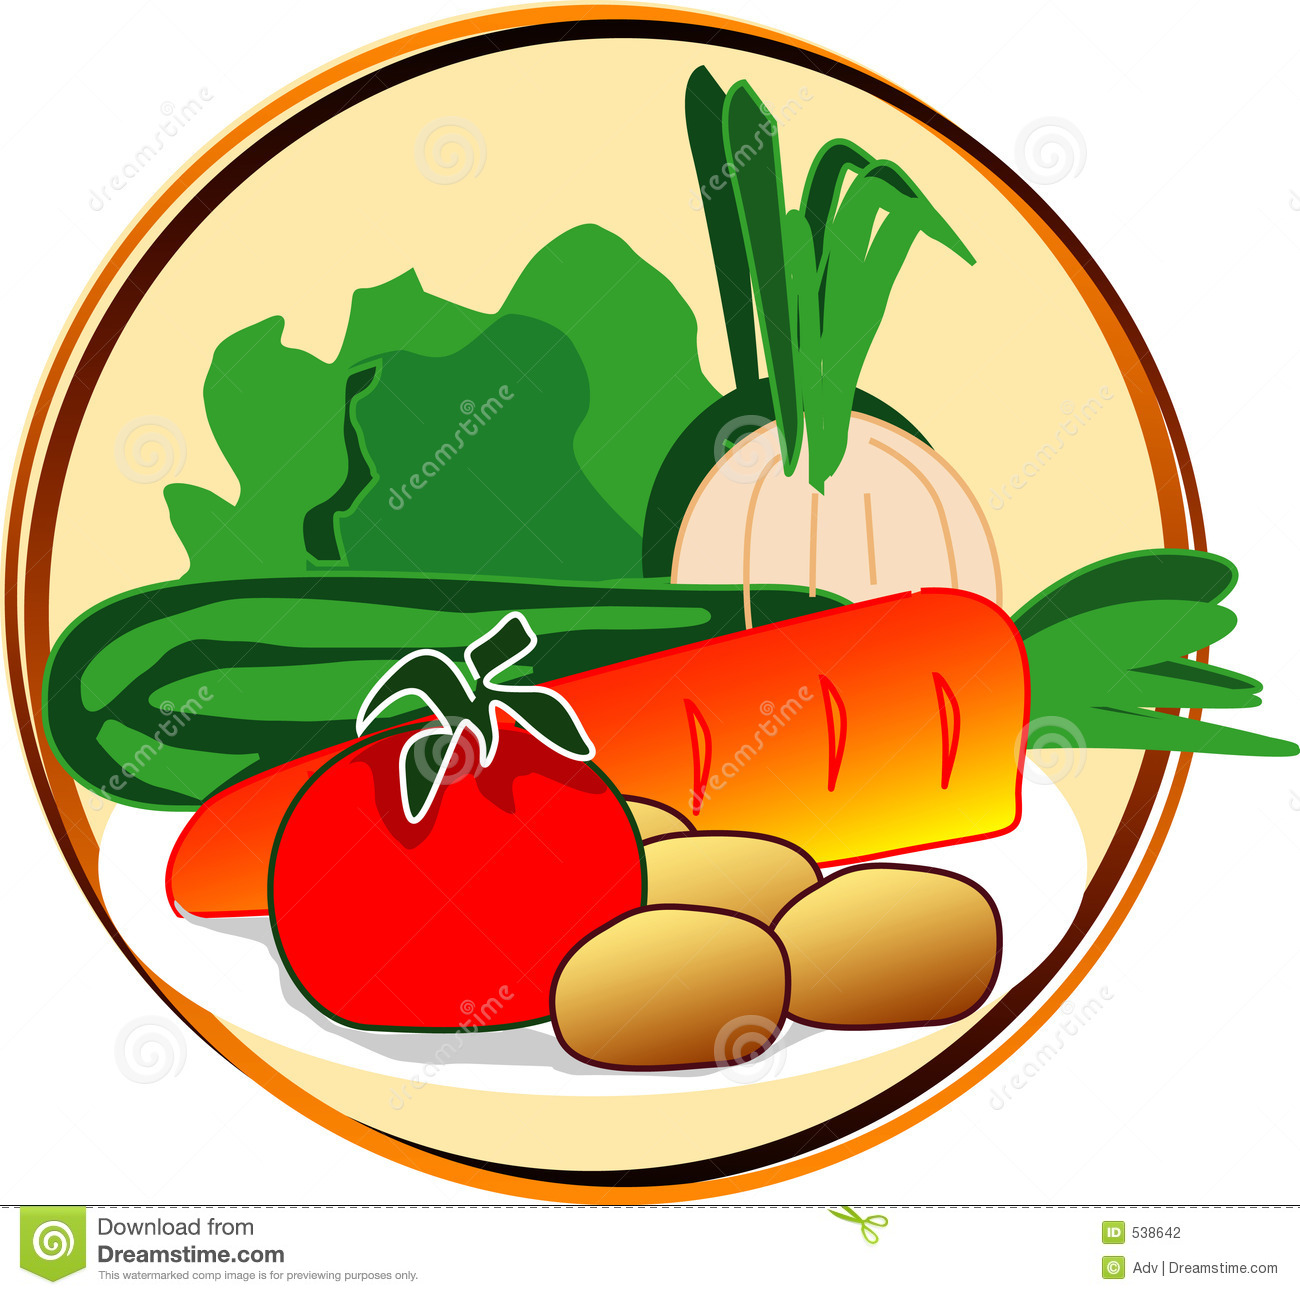 Pictogram - Vegetables Stock Photography - Image: 538642